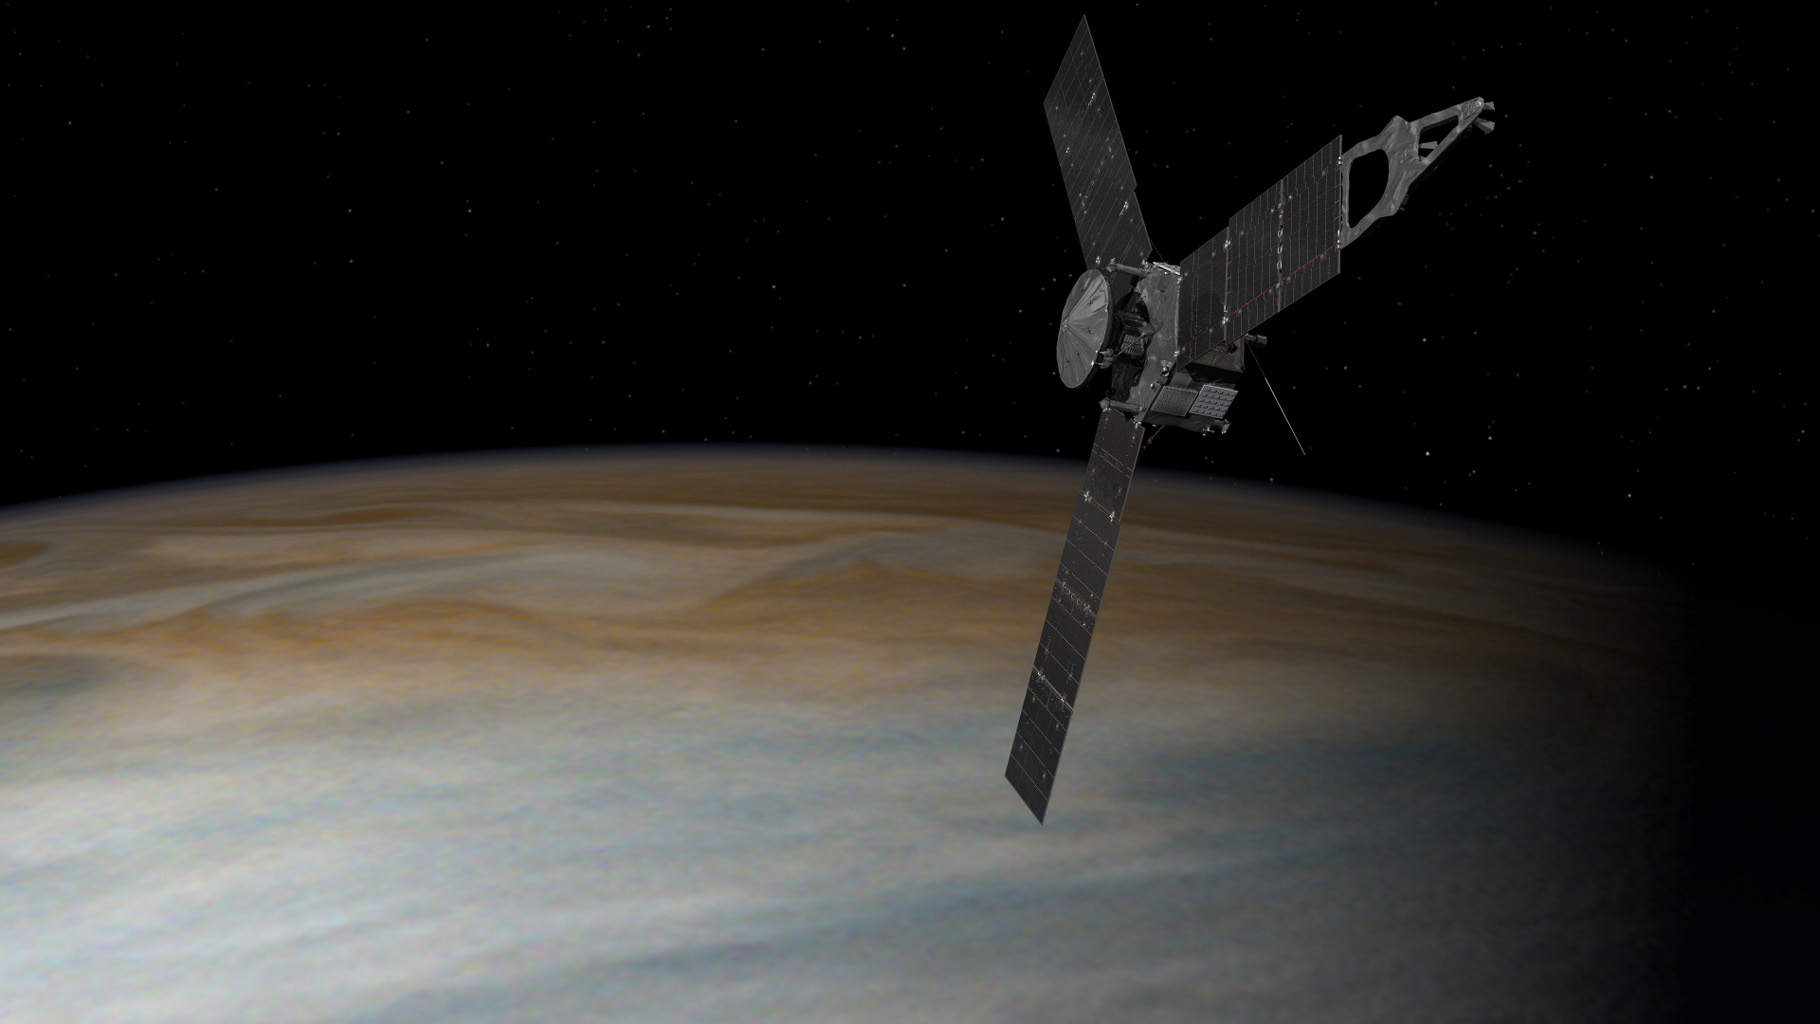 Juno in Orbit Around Jupiter (Illustration)